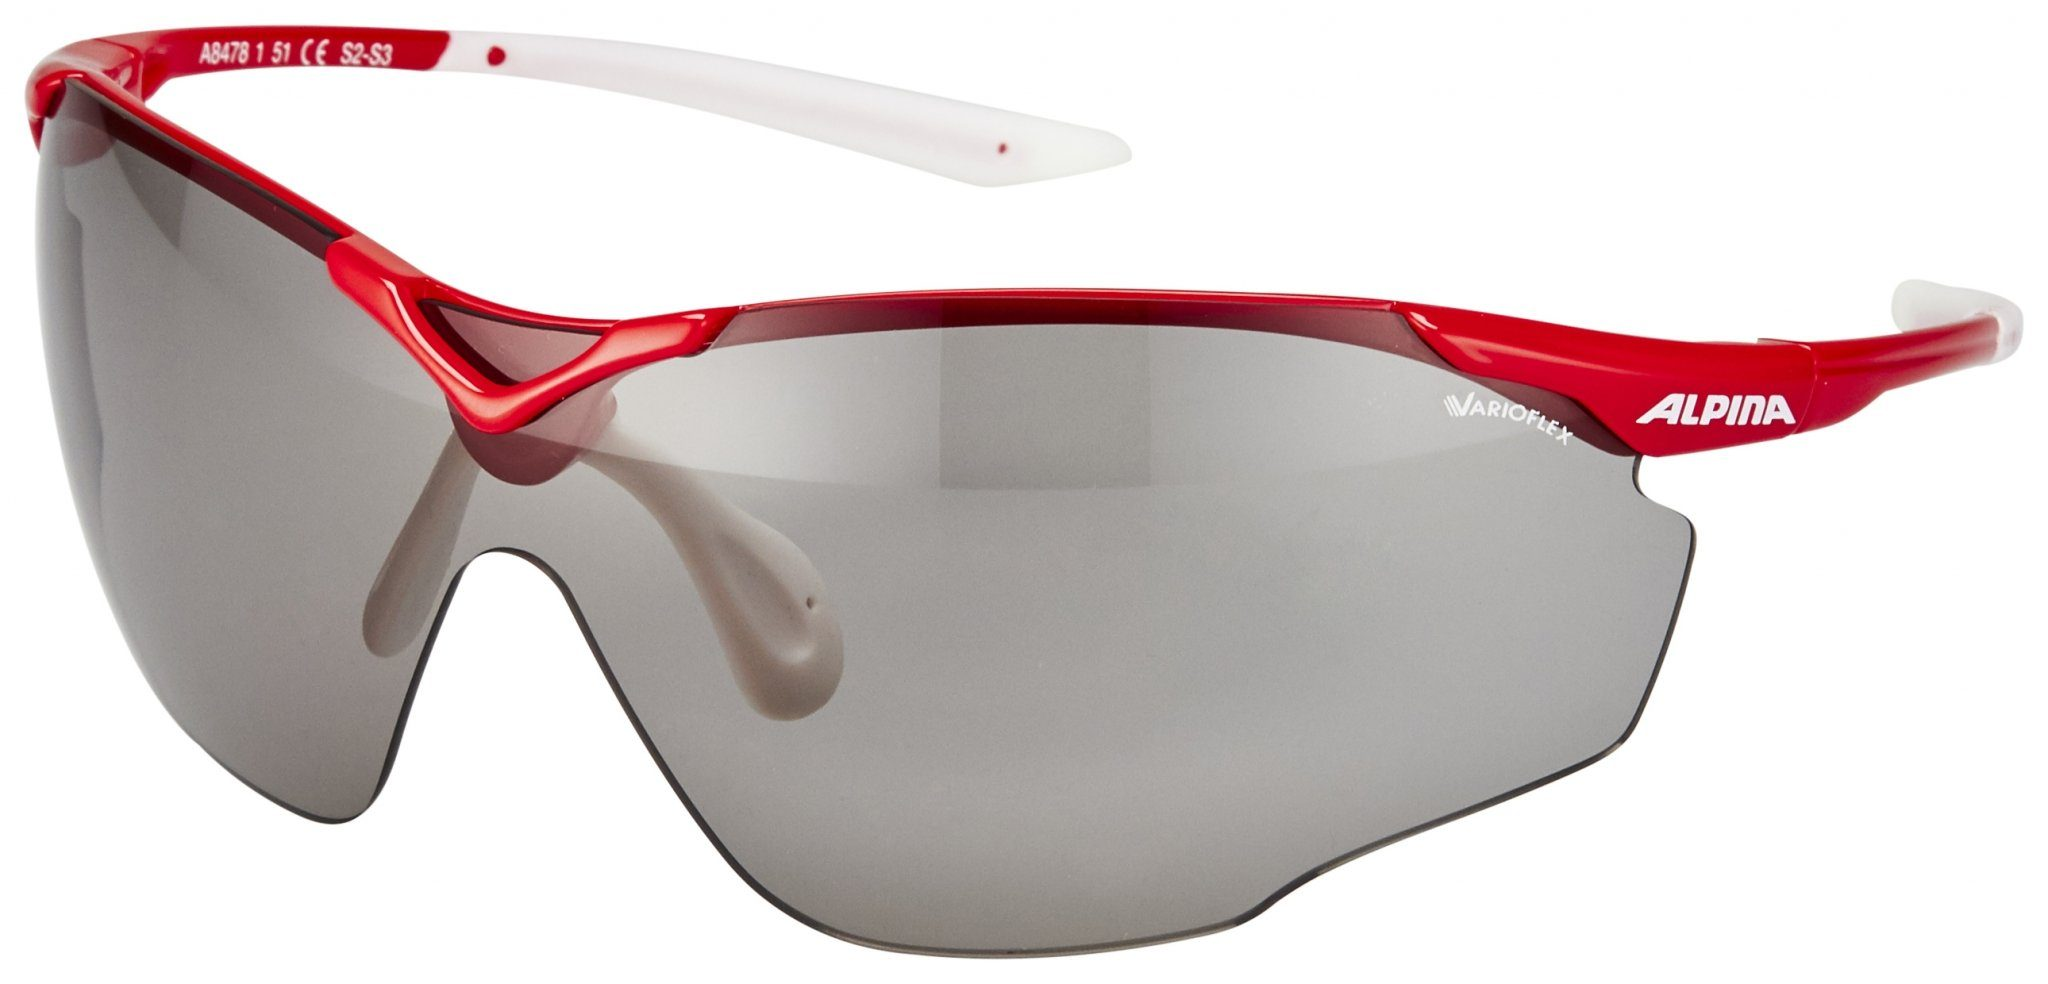 Alpina Radsportbrille »Alpina Splinter Shield VL«